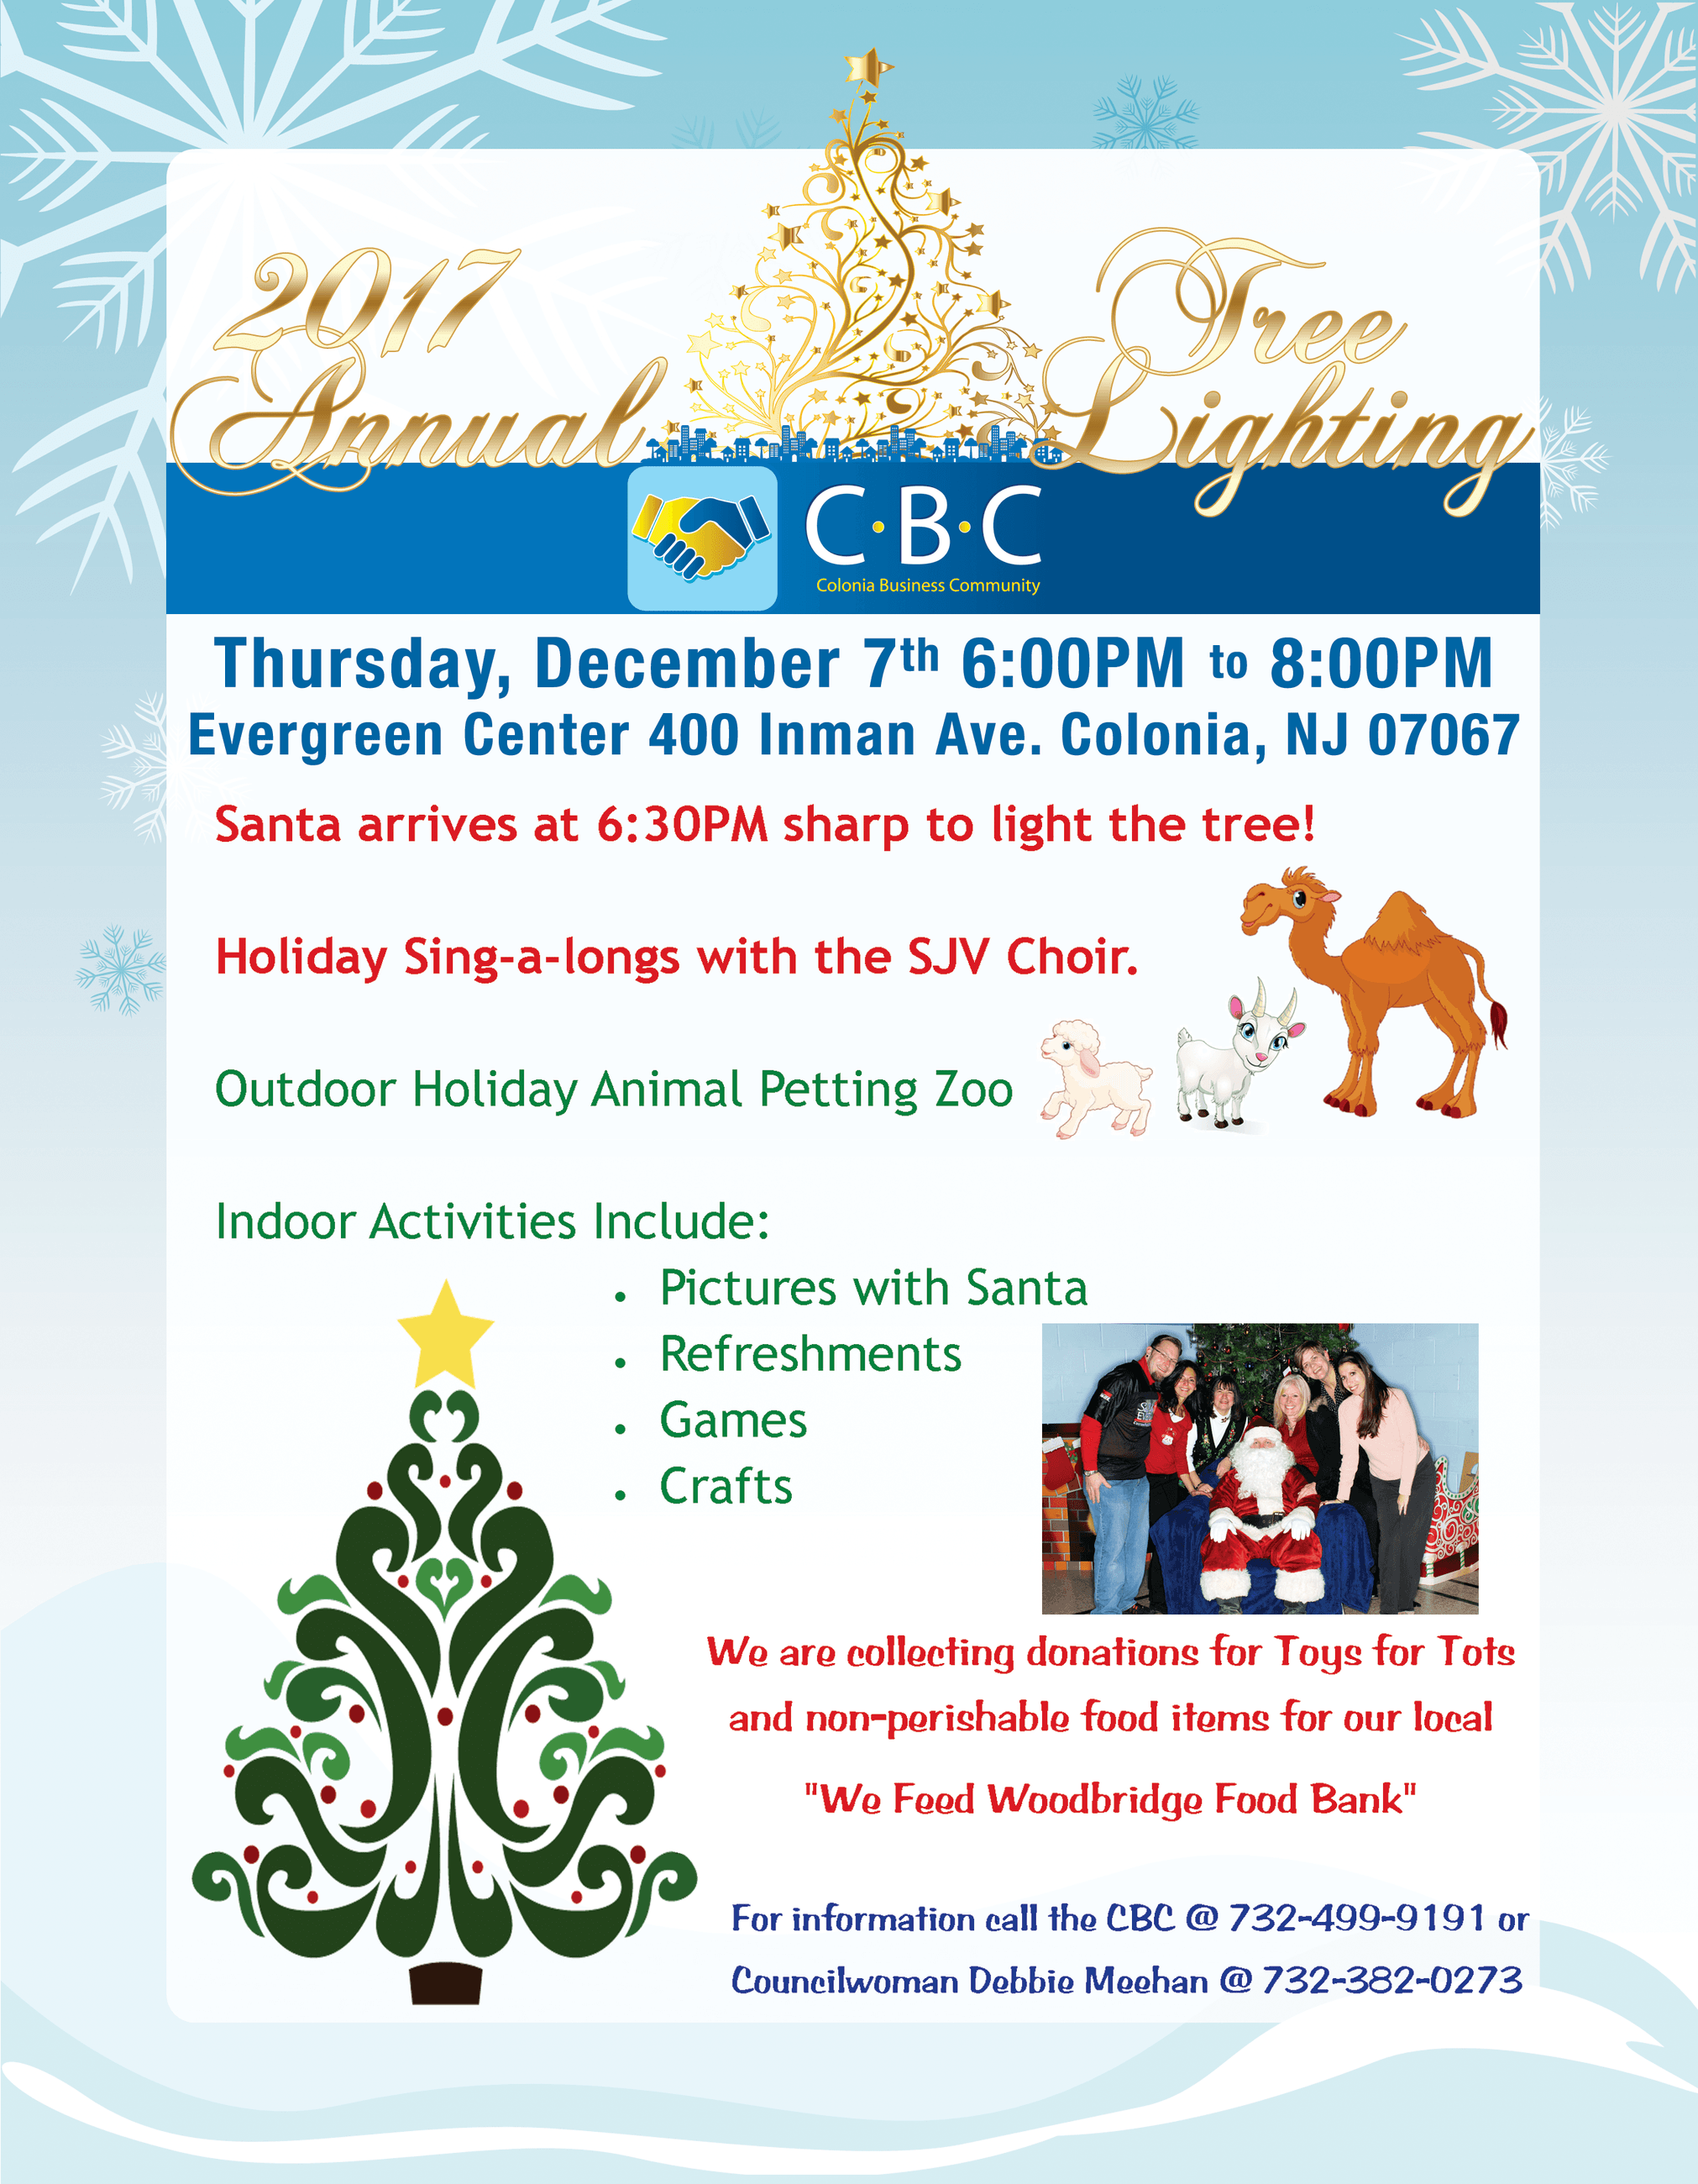 2017 CBC Tree Lighting